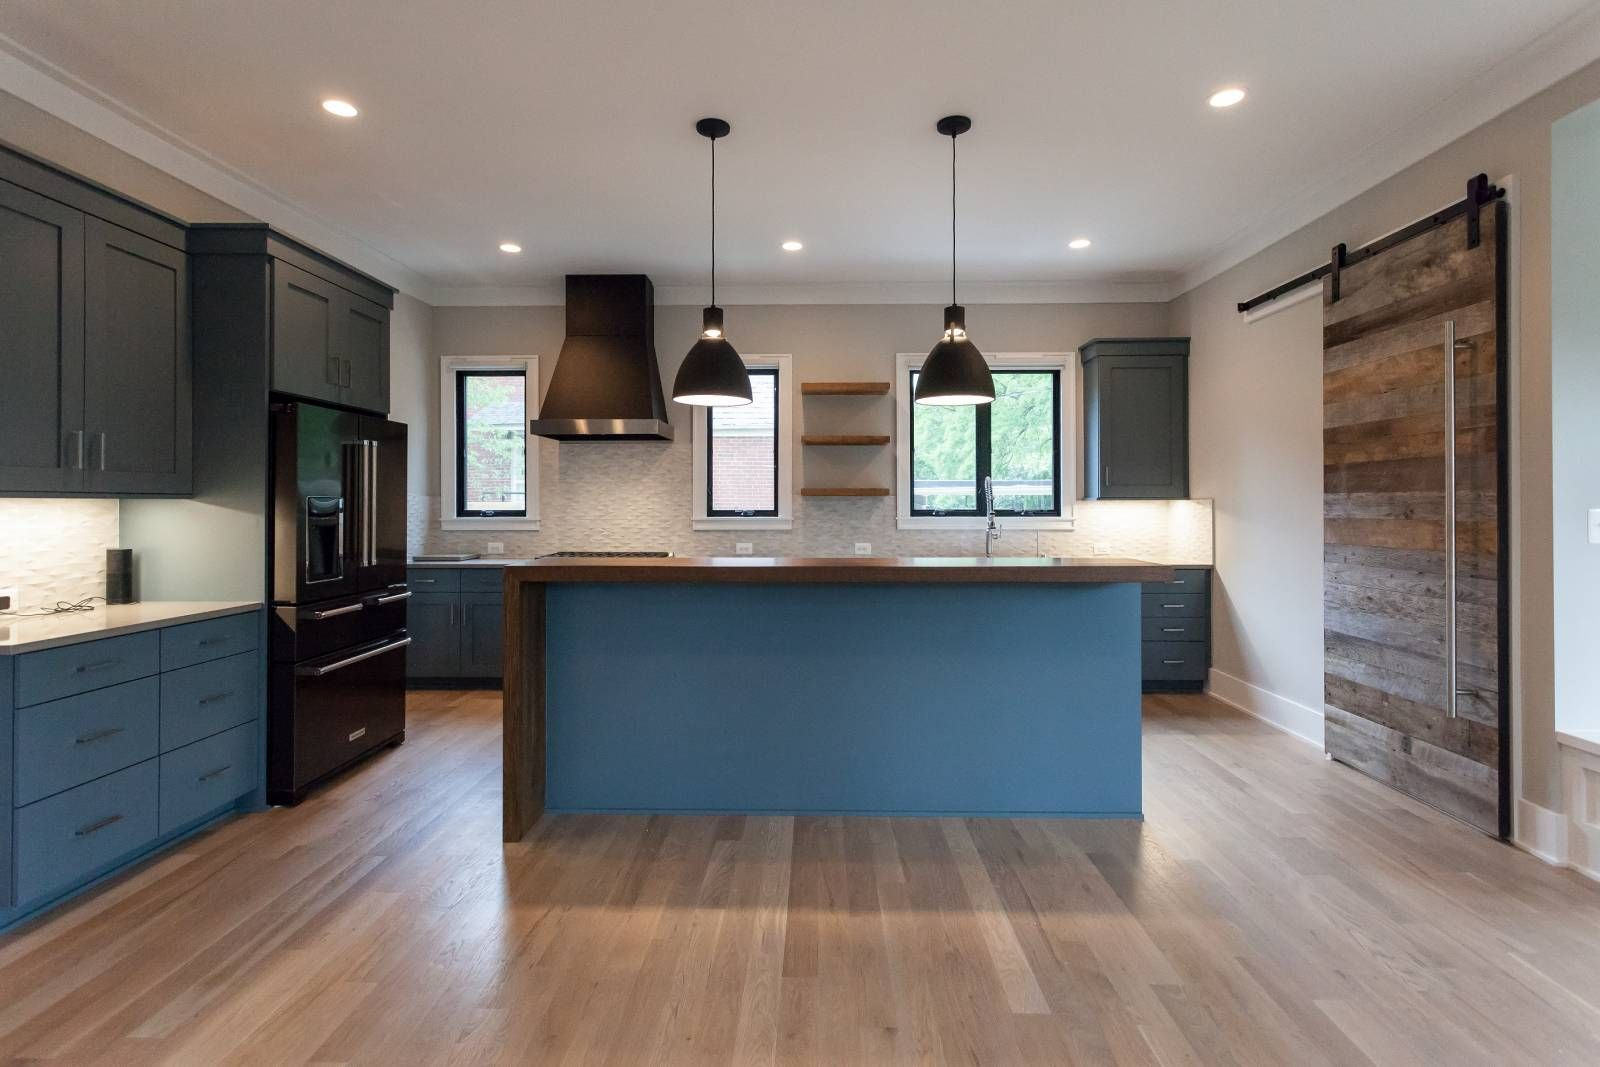 Contemporary Modern Kitchen With Slate Blue Cabinets And Reclaimed Wood Bar Counter And Black A Black Kitchens Black Appliances Kitchen Kitchen Renovation Cost